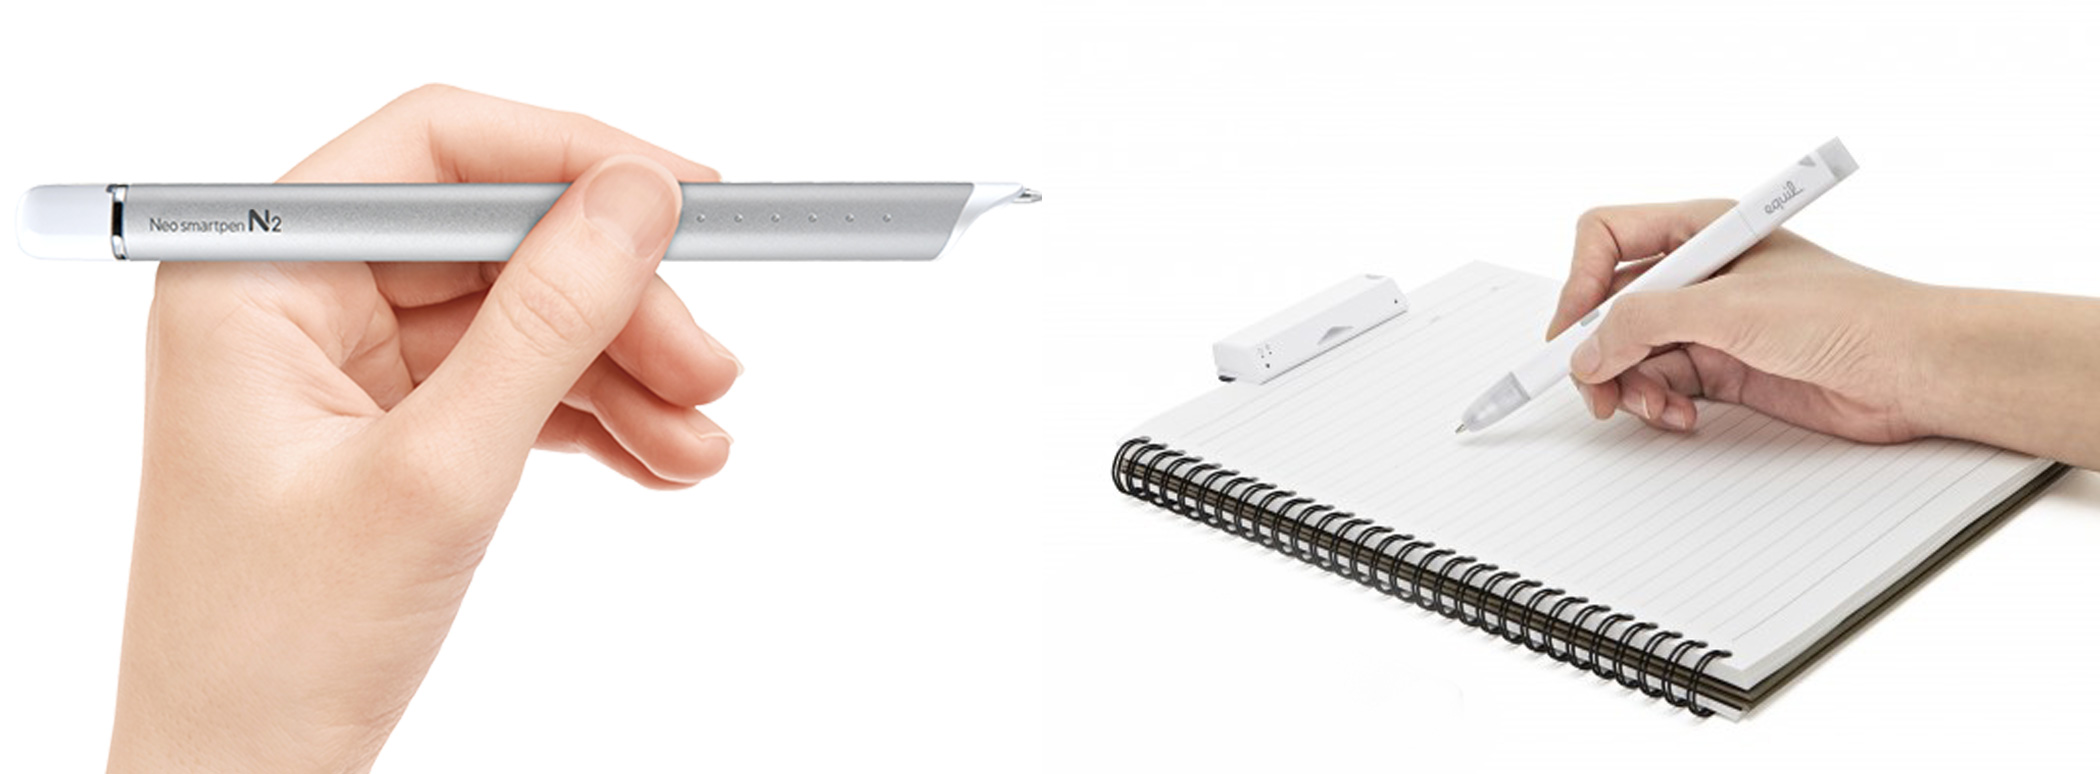 Neo Smartpen N2 vs. Equil